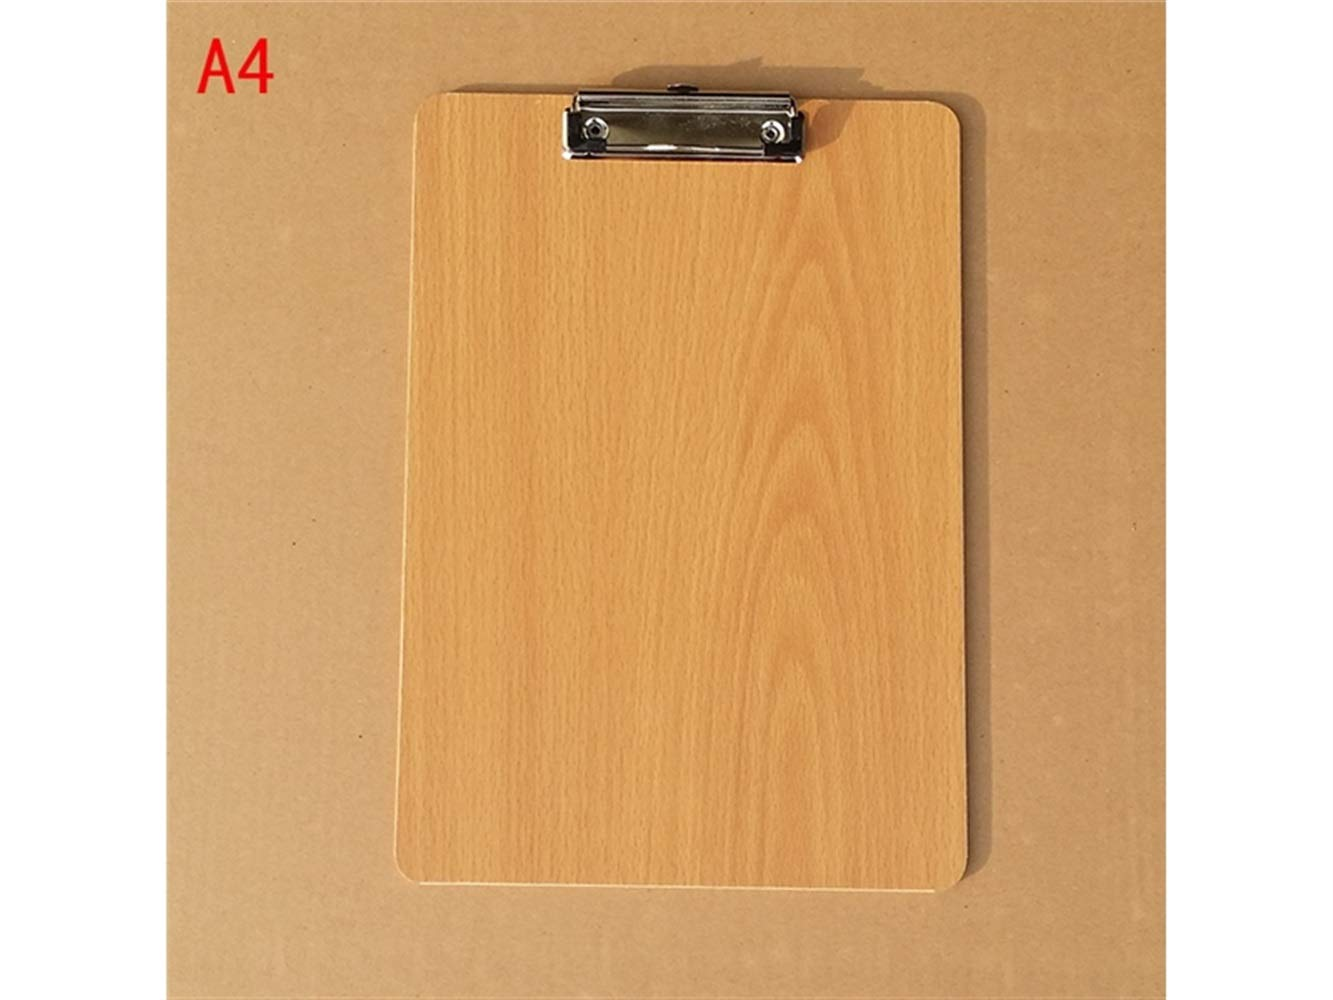 Pullic Write board A4 Wooden File Clipboard with Hanging Hook (Yellow)